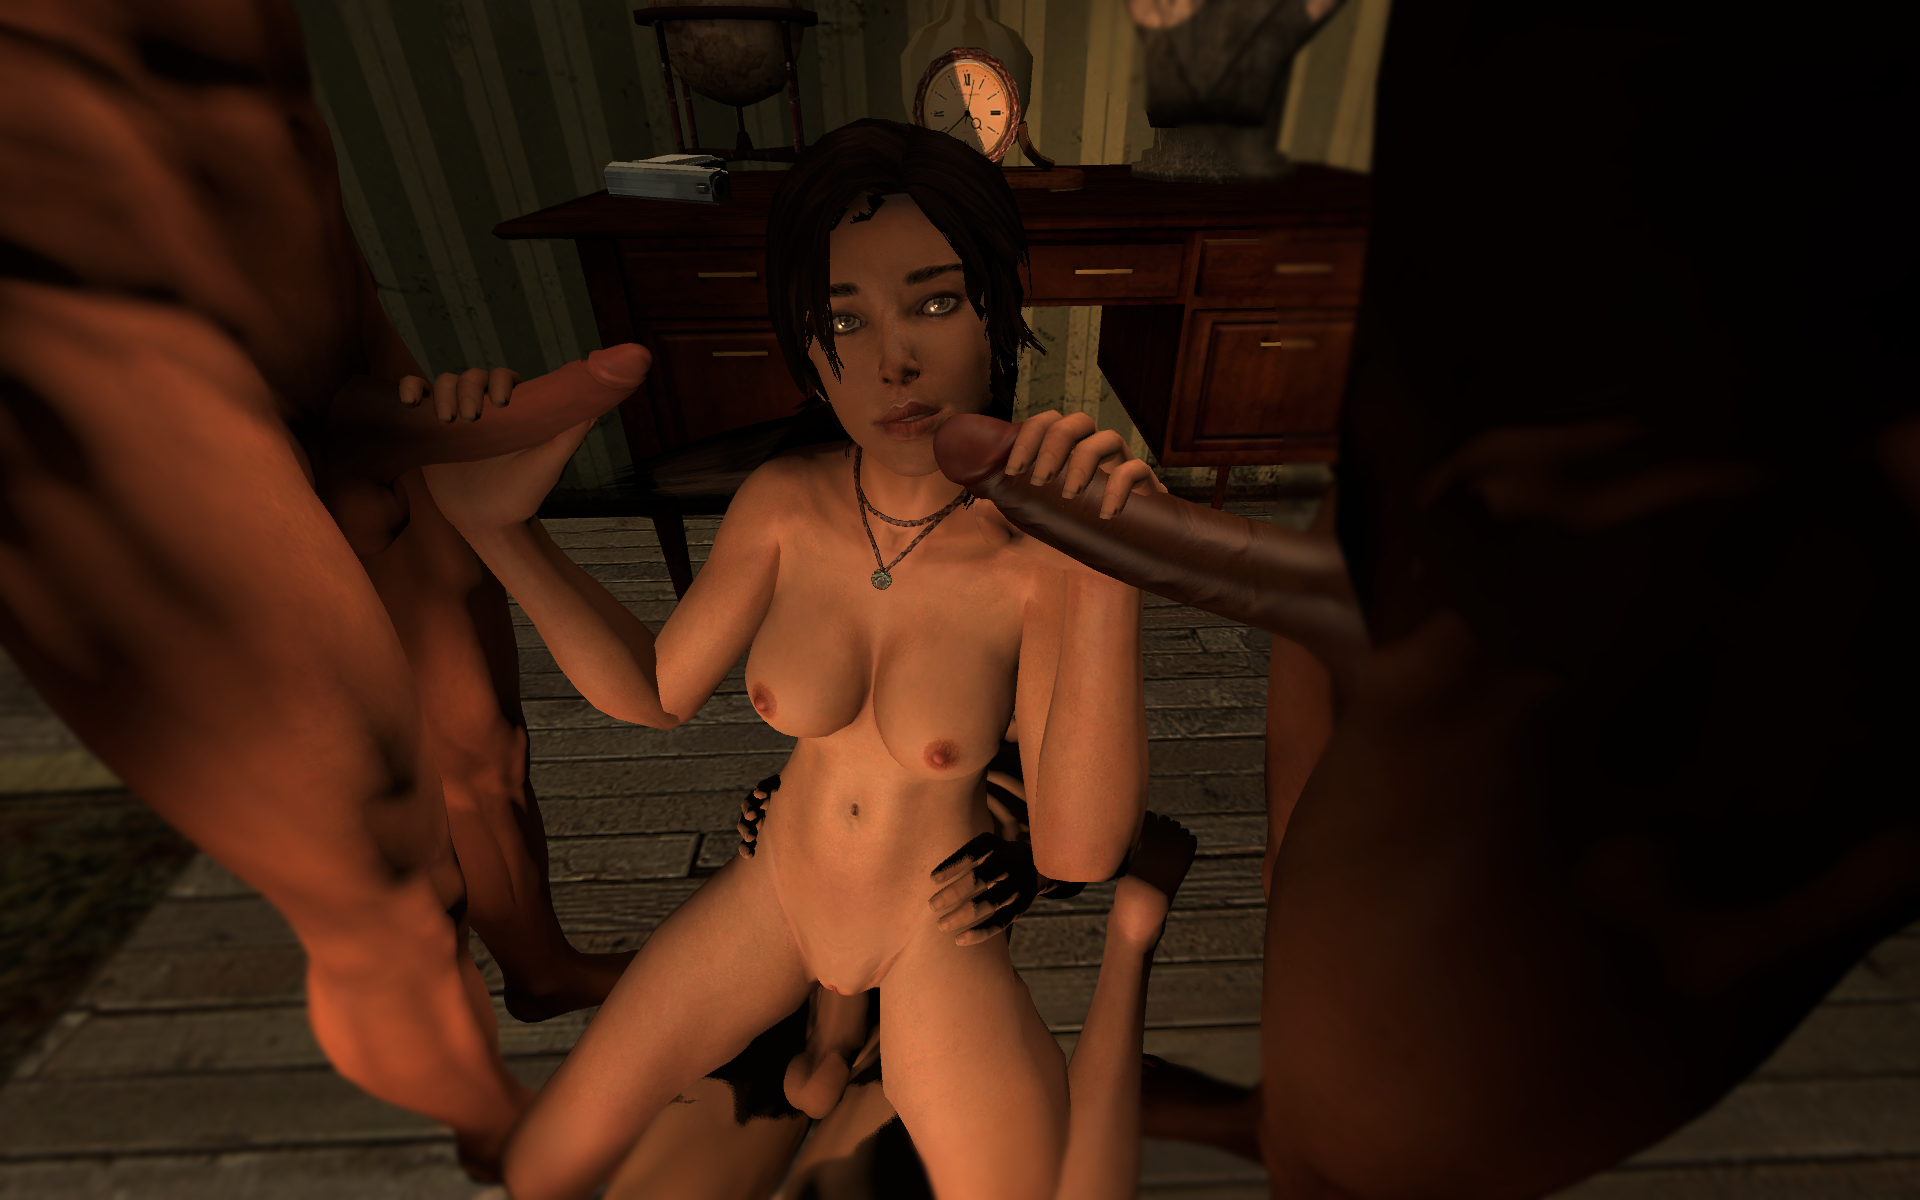 Tomb raider game sexy hentai pics nsfw videos